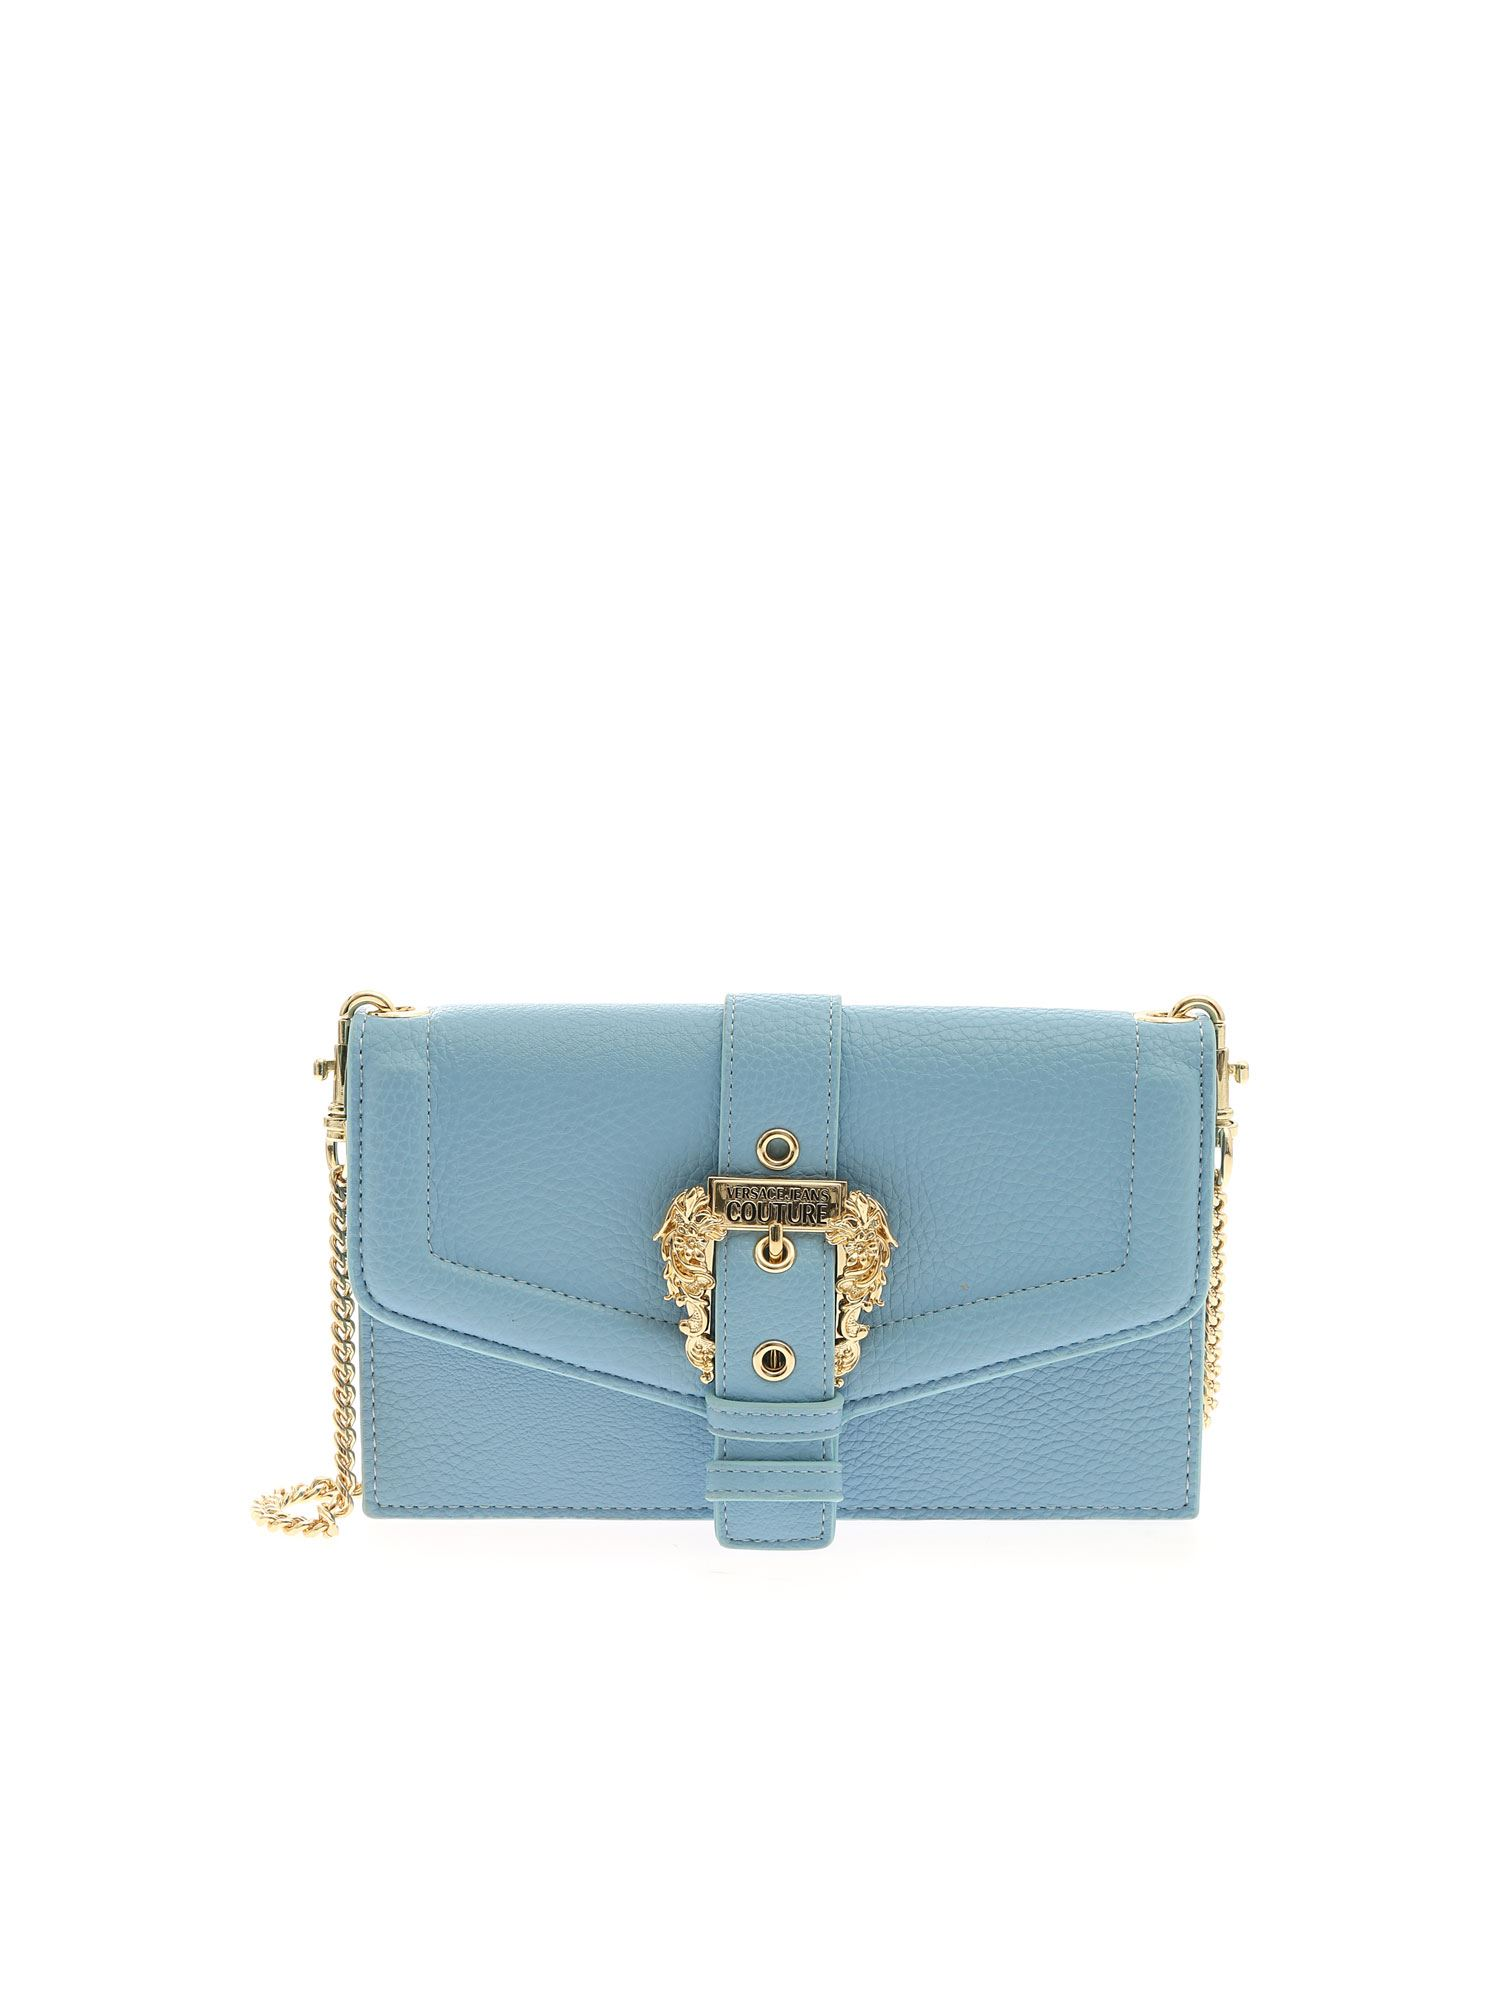 Versace Jeans Couture BAROQUE BUCKLE WALLET IN LIGHT BLUE